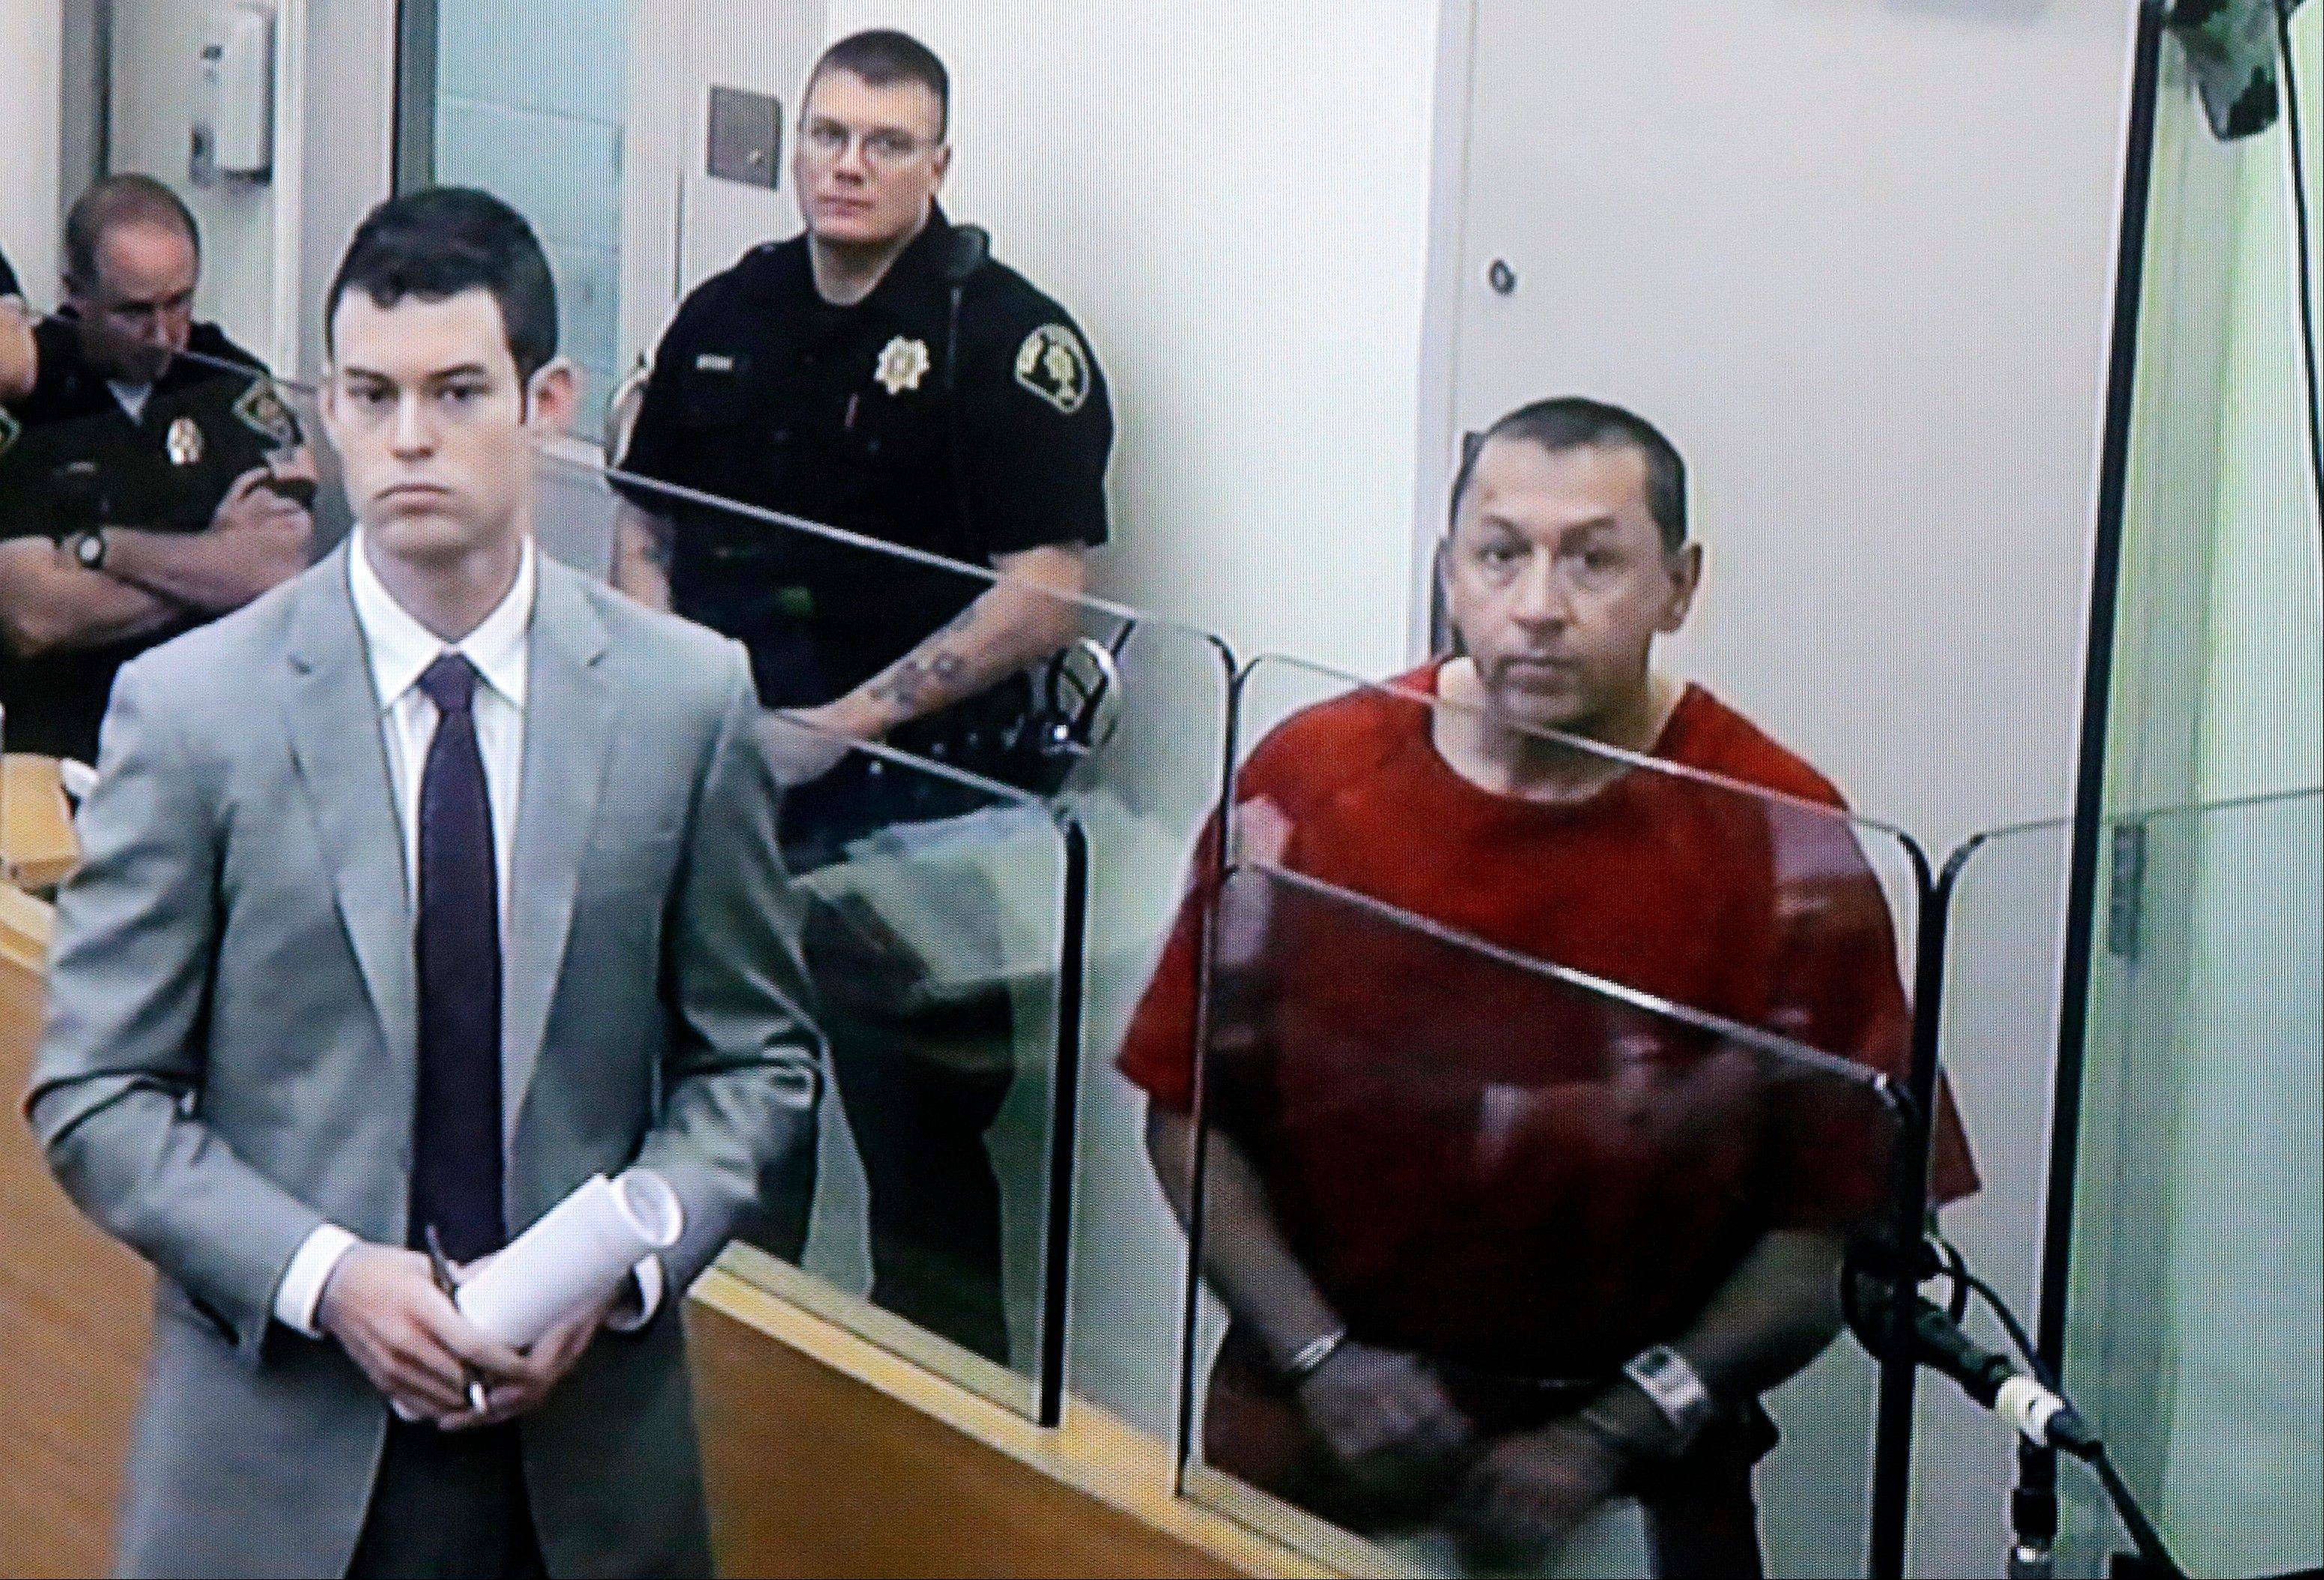 Michael Sean Stanley, right, appears in court Wednesday with defense attorney Nick Gross.